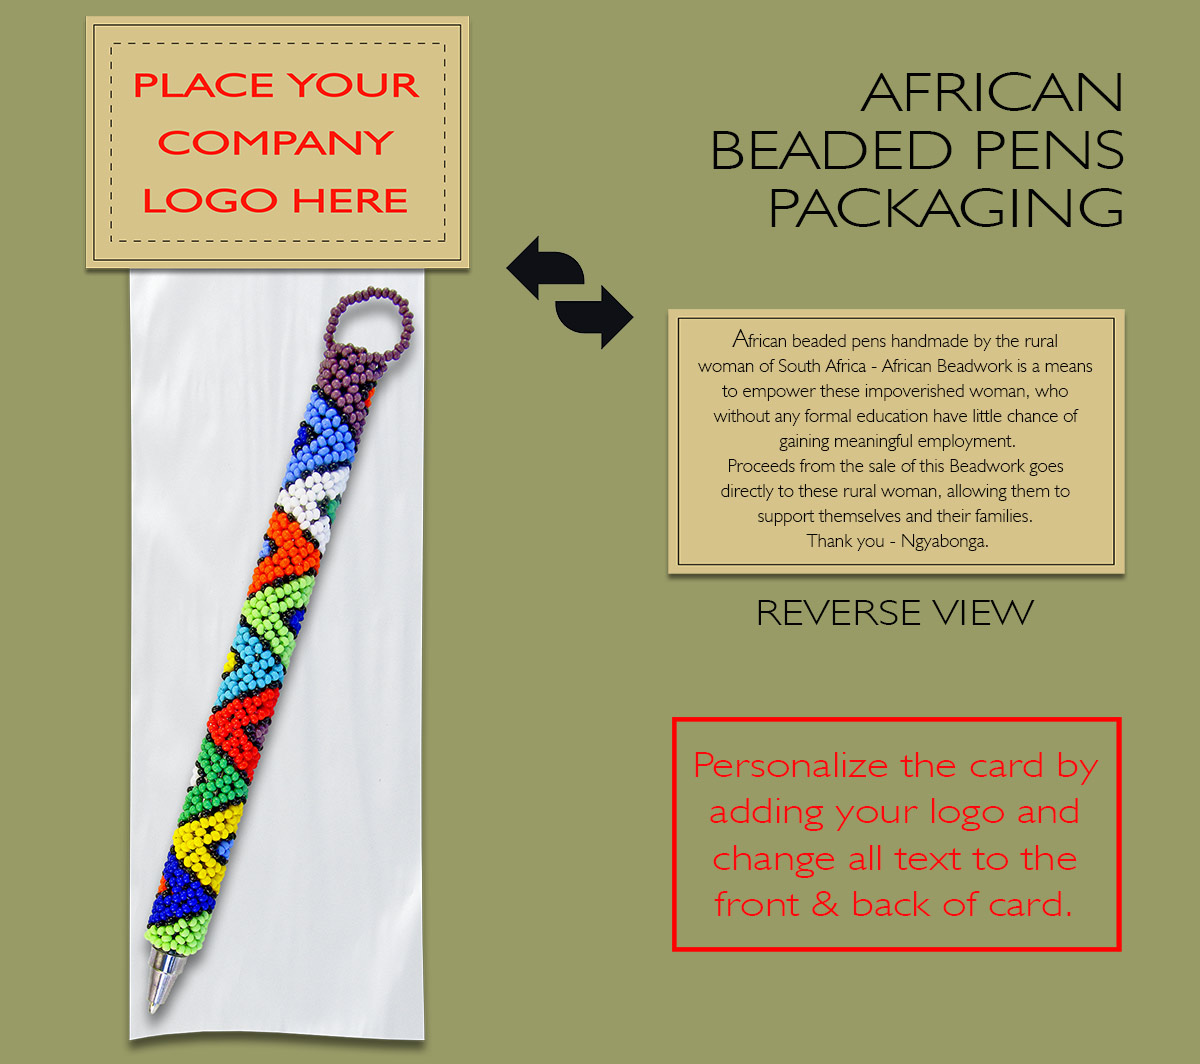 Packaging Beaded Pens Personalized